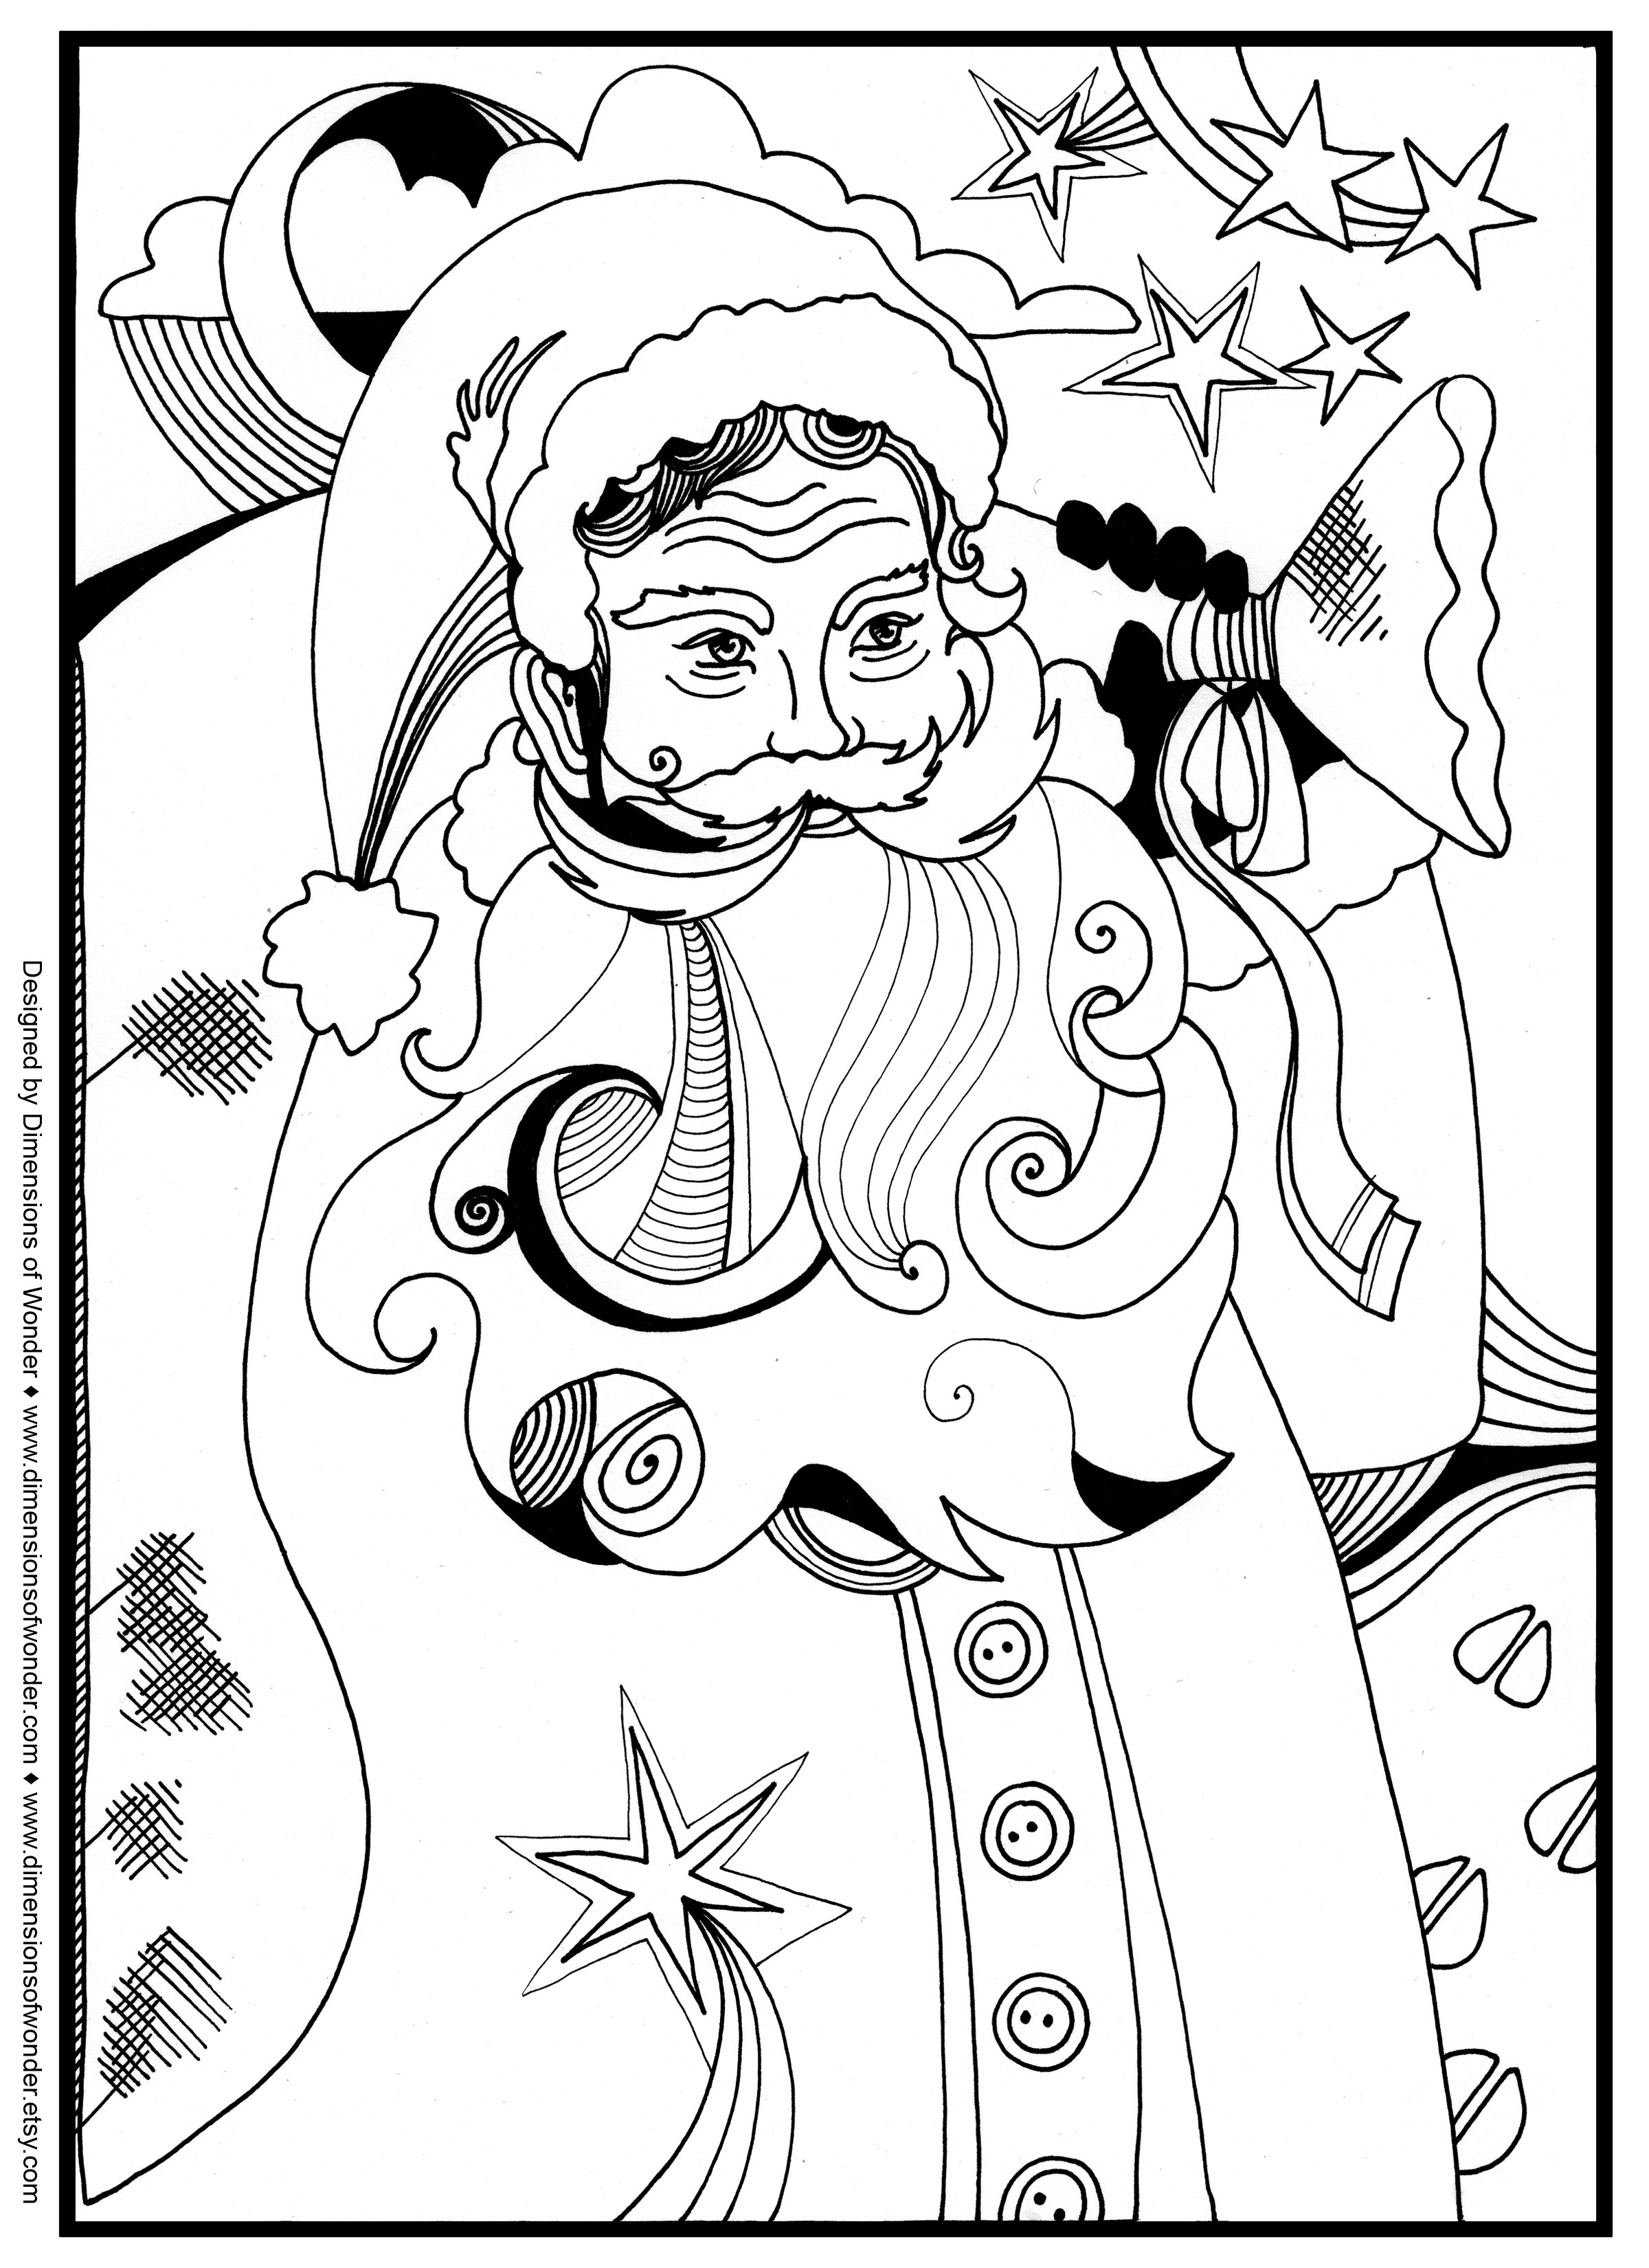 coloring book happy birthday ; outstanding-personalized-coloring-books-and-crayons-happy-birthday-frozen-page-elegant-santa-christmas-around-the-world